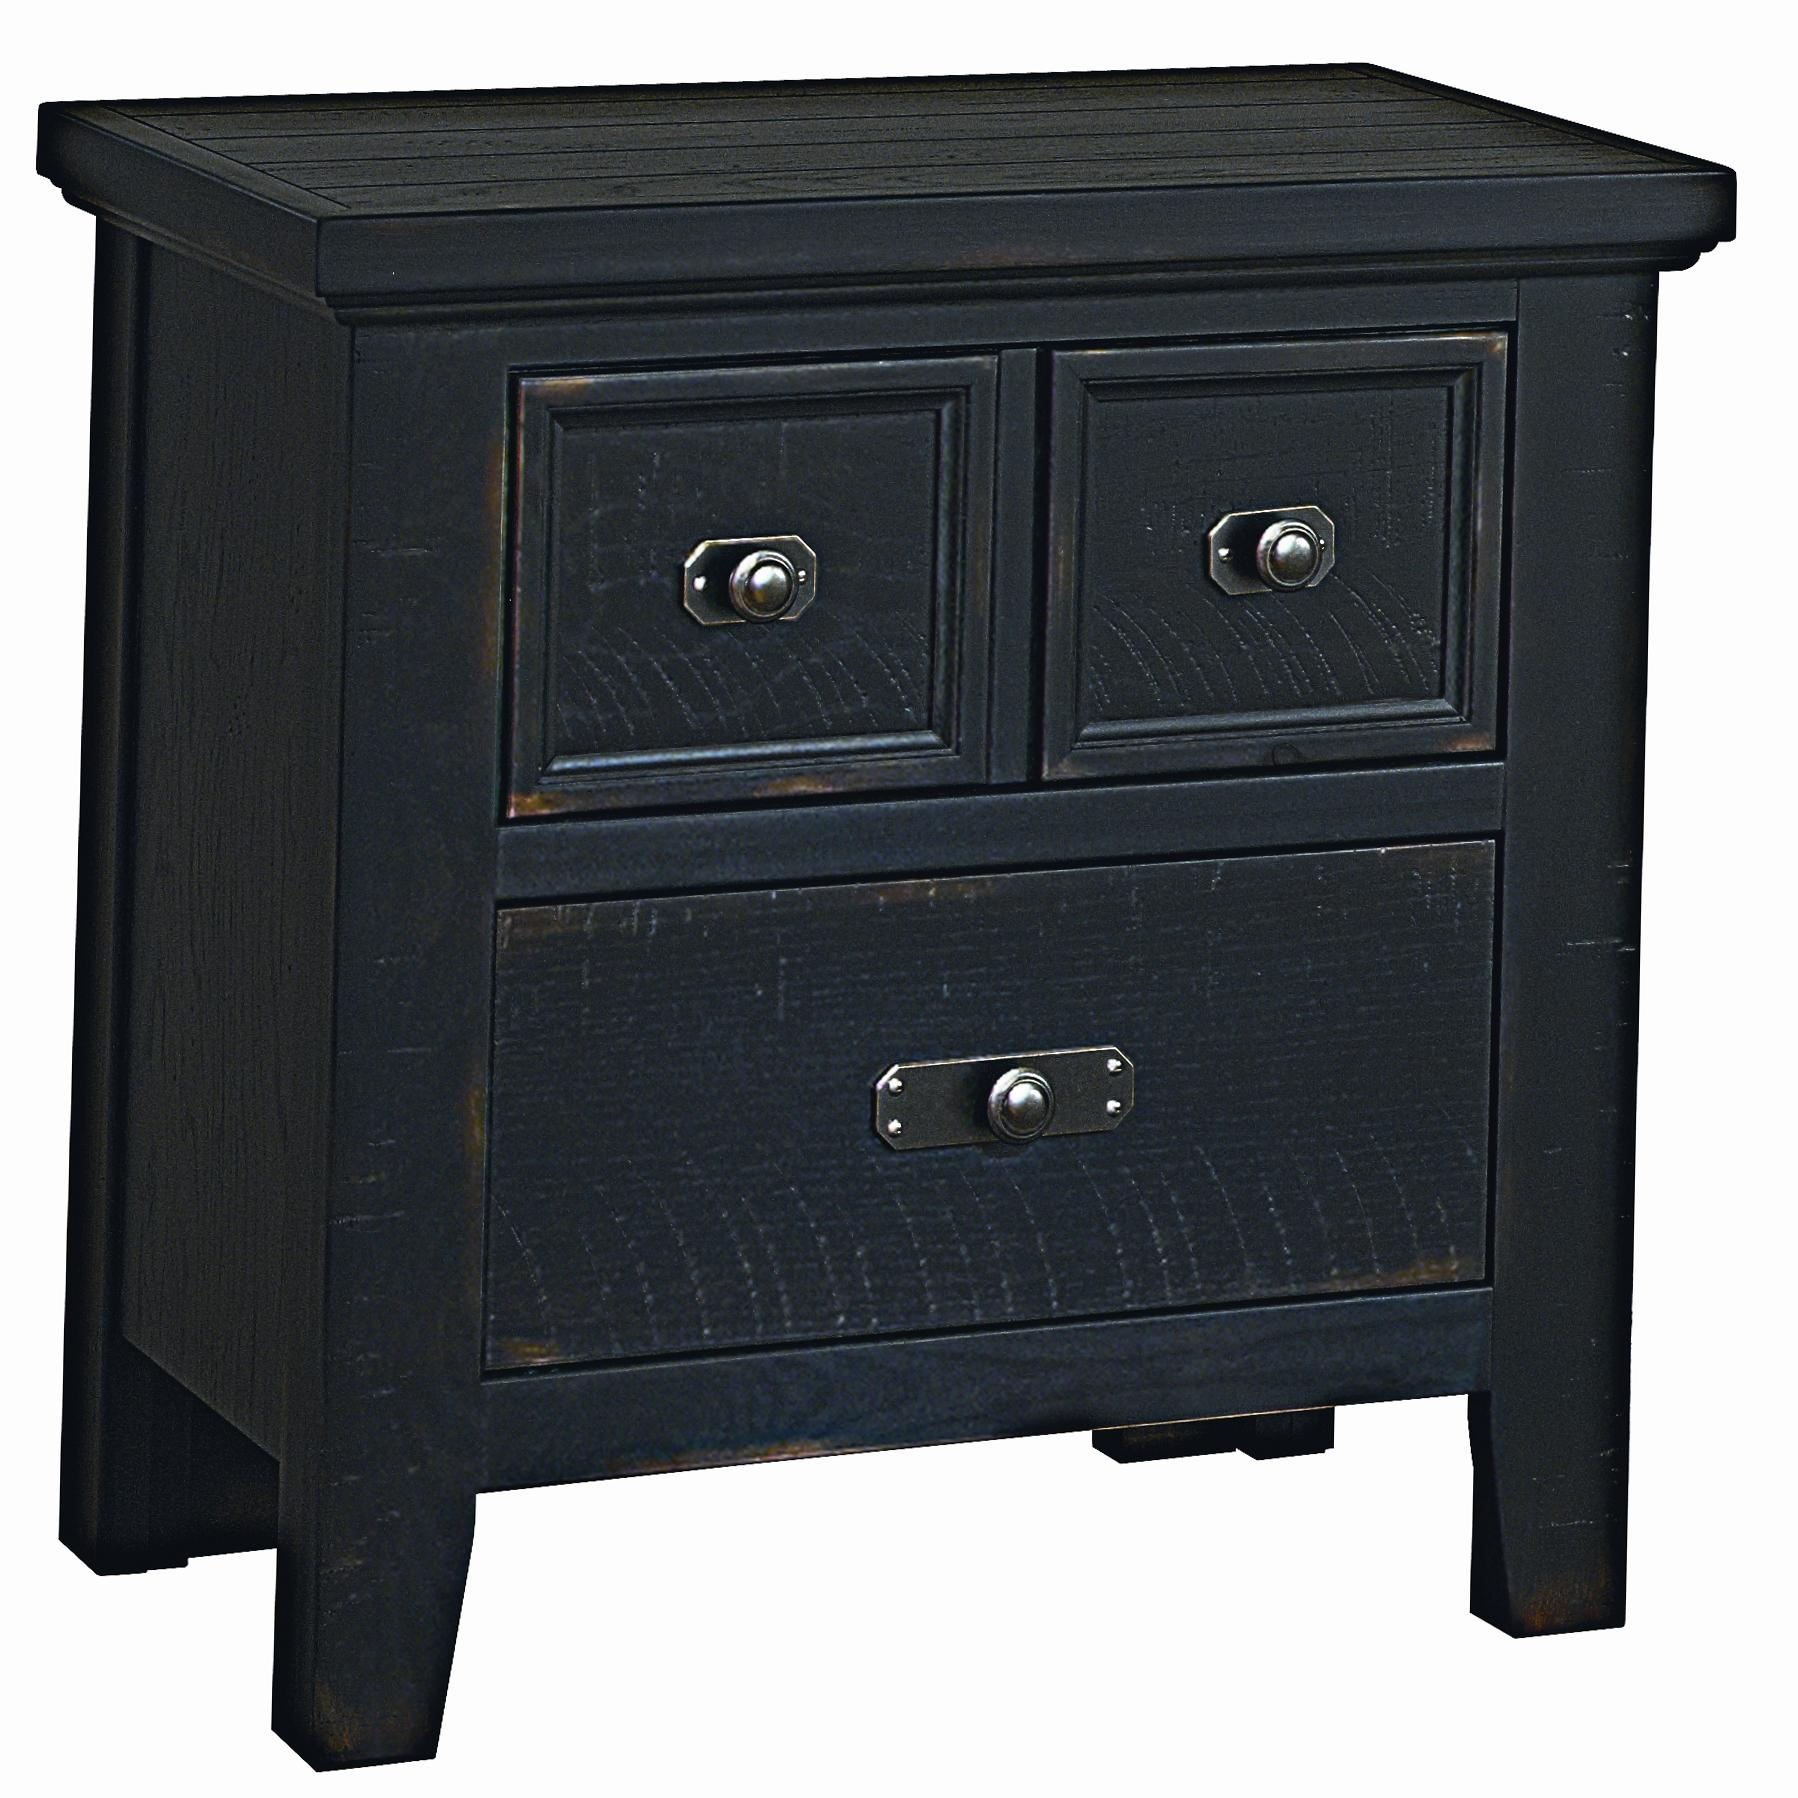 Vaughan Bassett Timber Mill Night Stand - 2 Drawers - Item Number: BB56-226